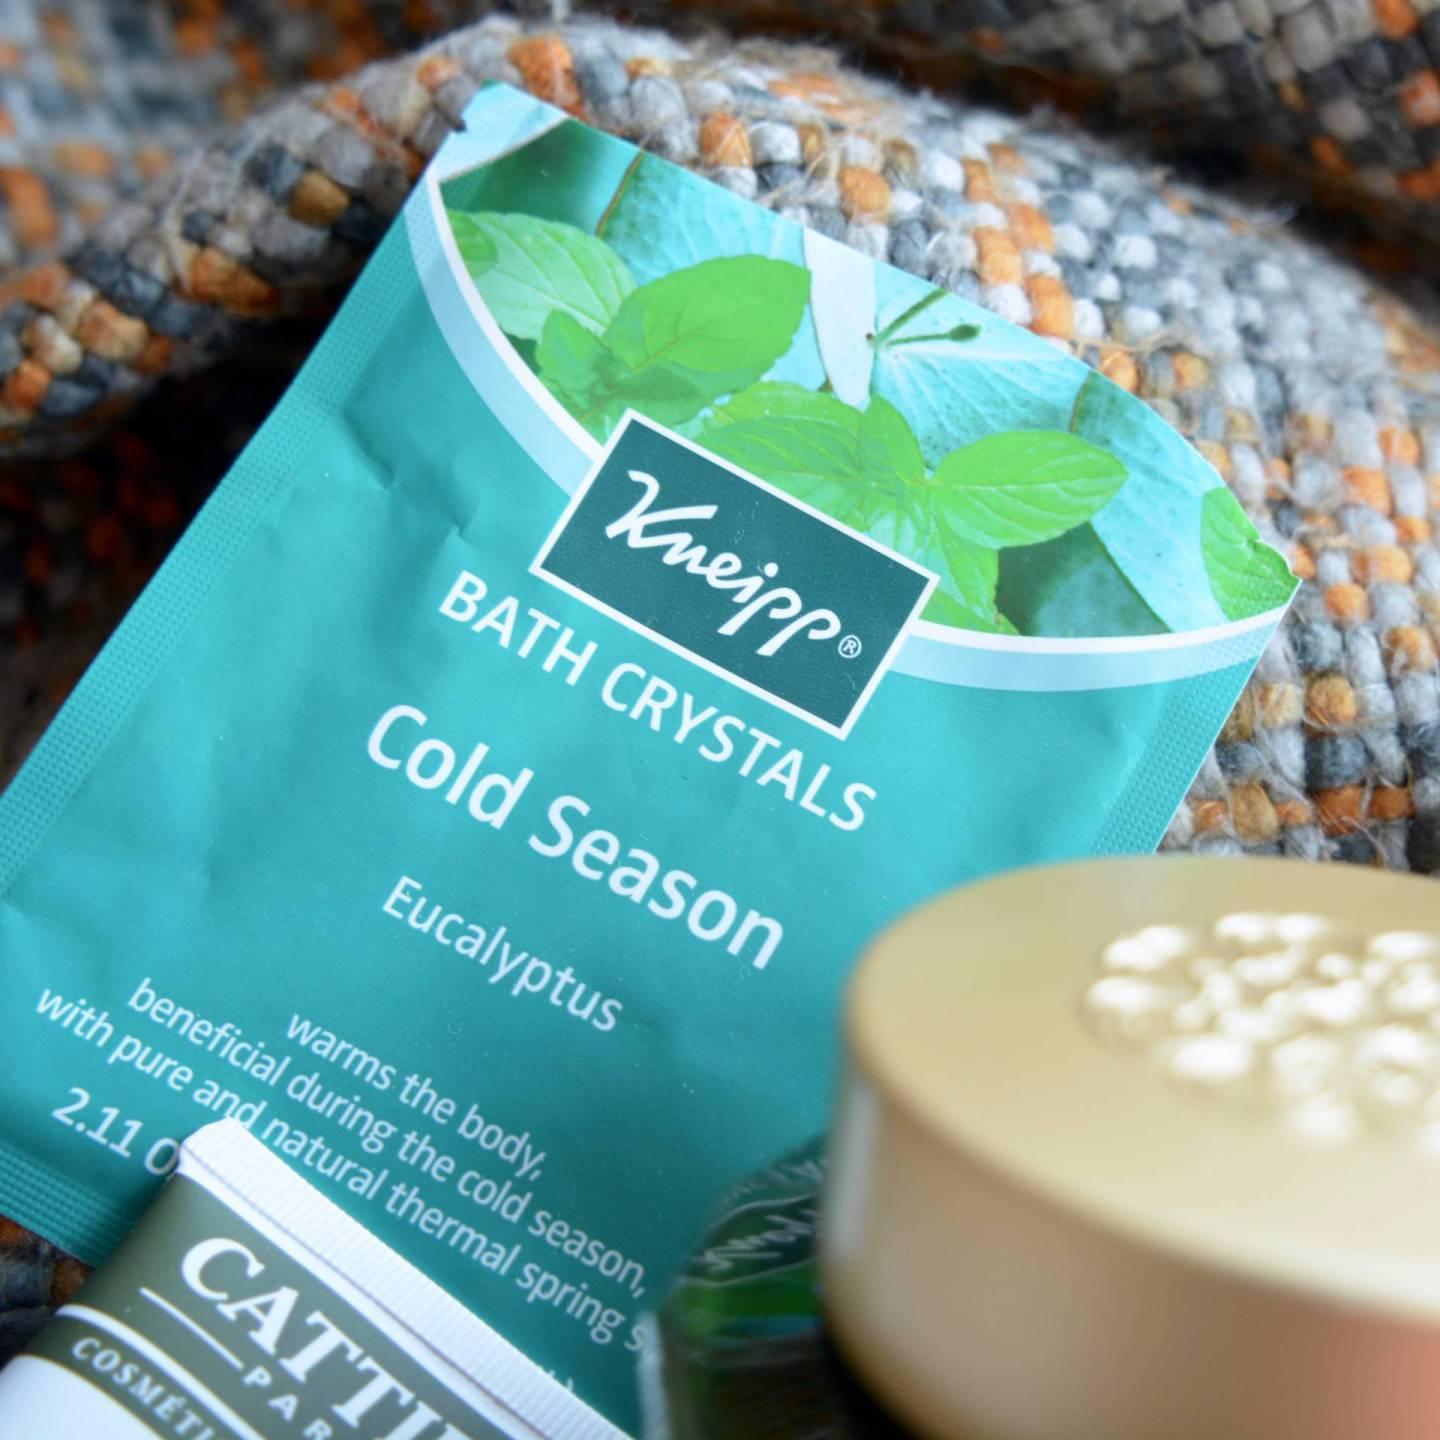 Winter Pamper - Kneipp Cold Season Eucalyptus Bath crystals. These are GENIUS.